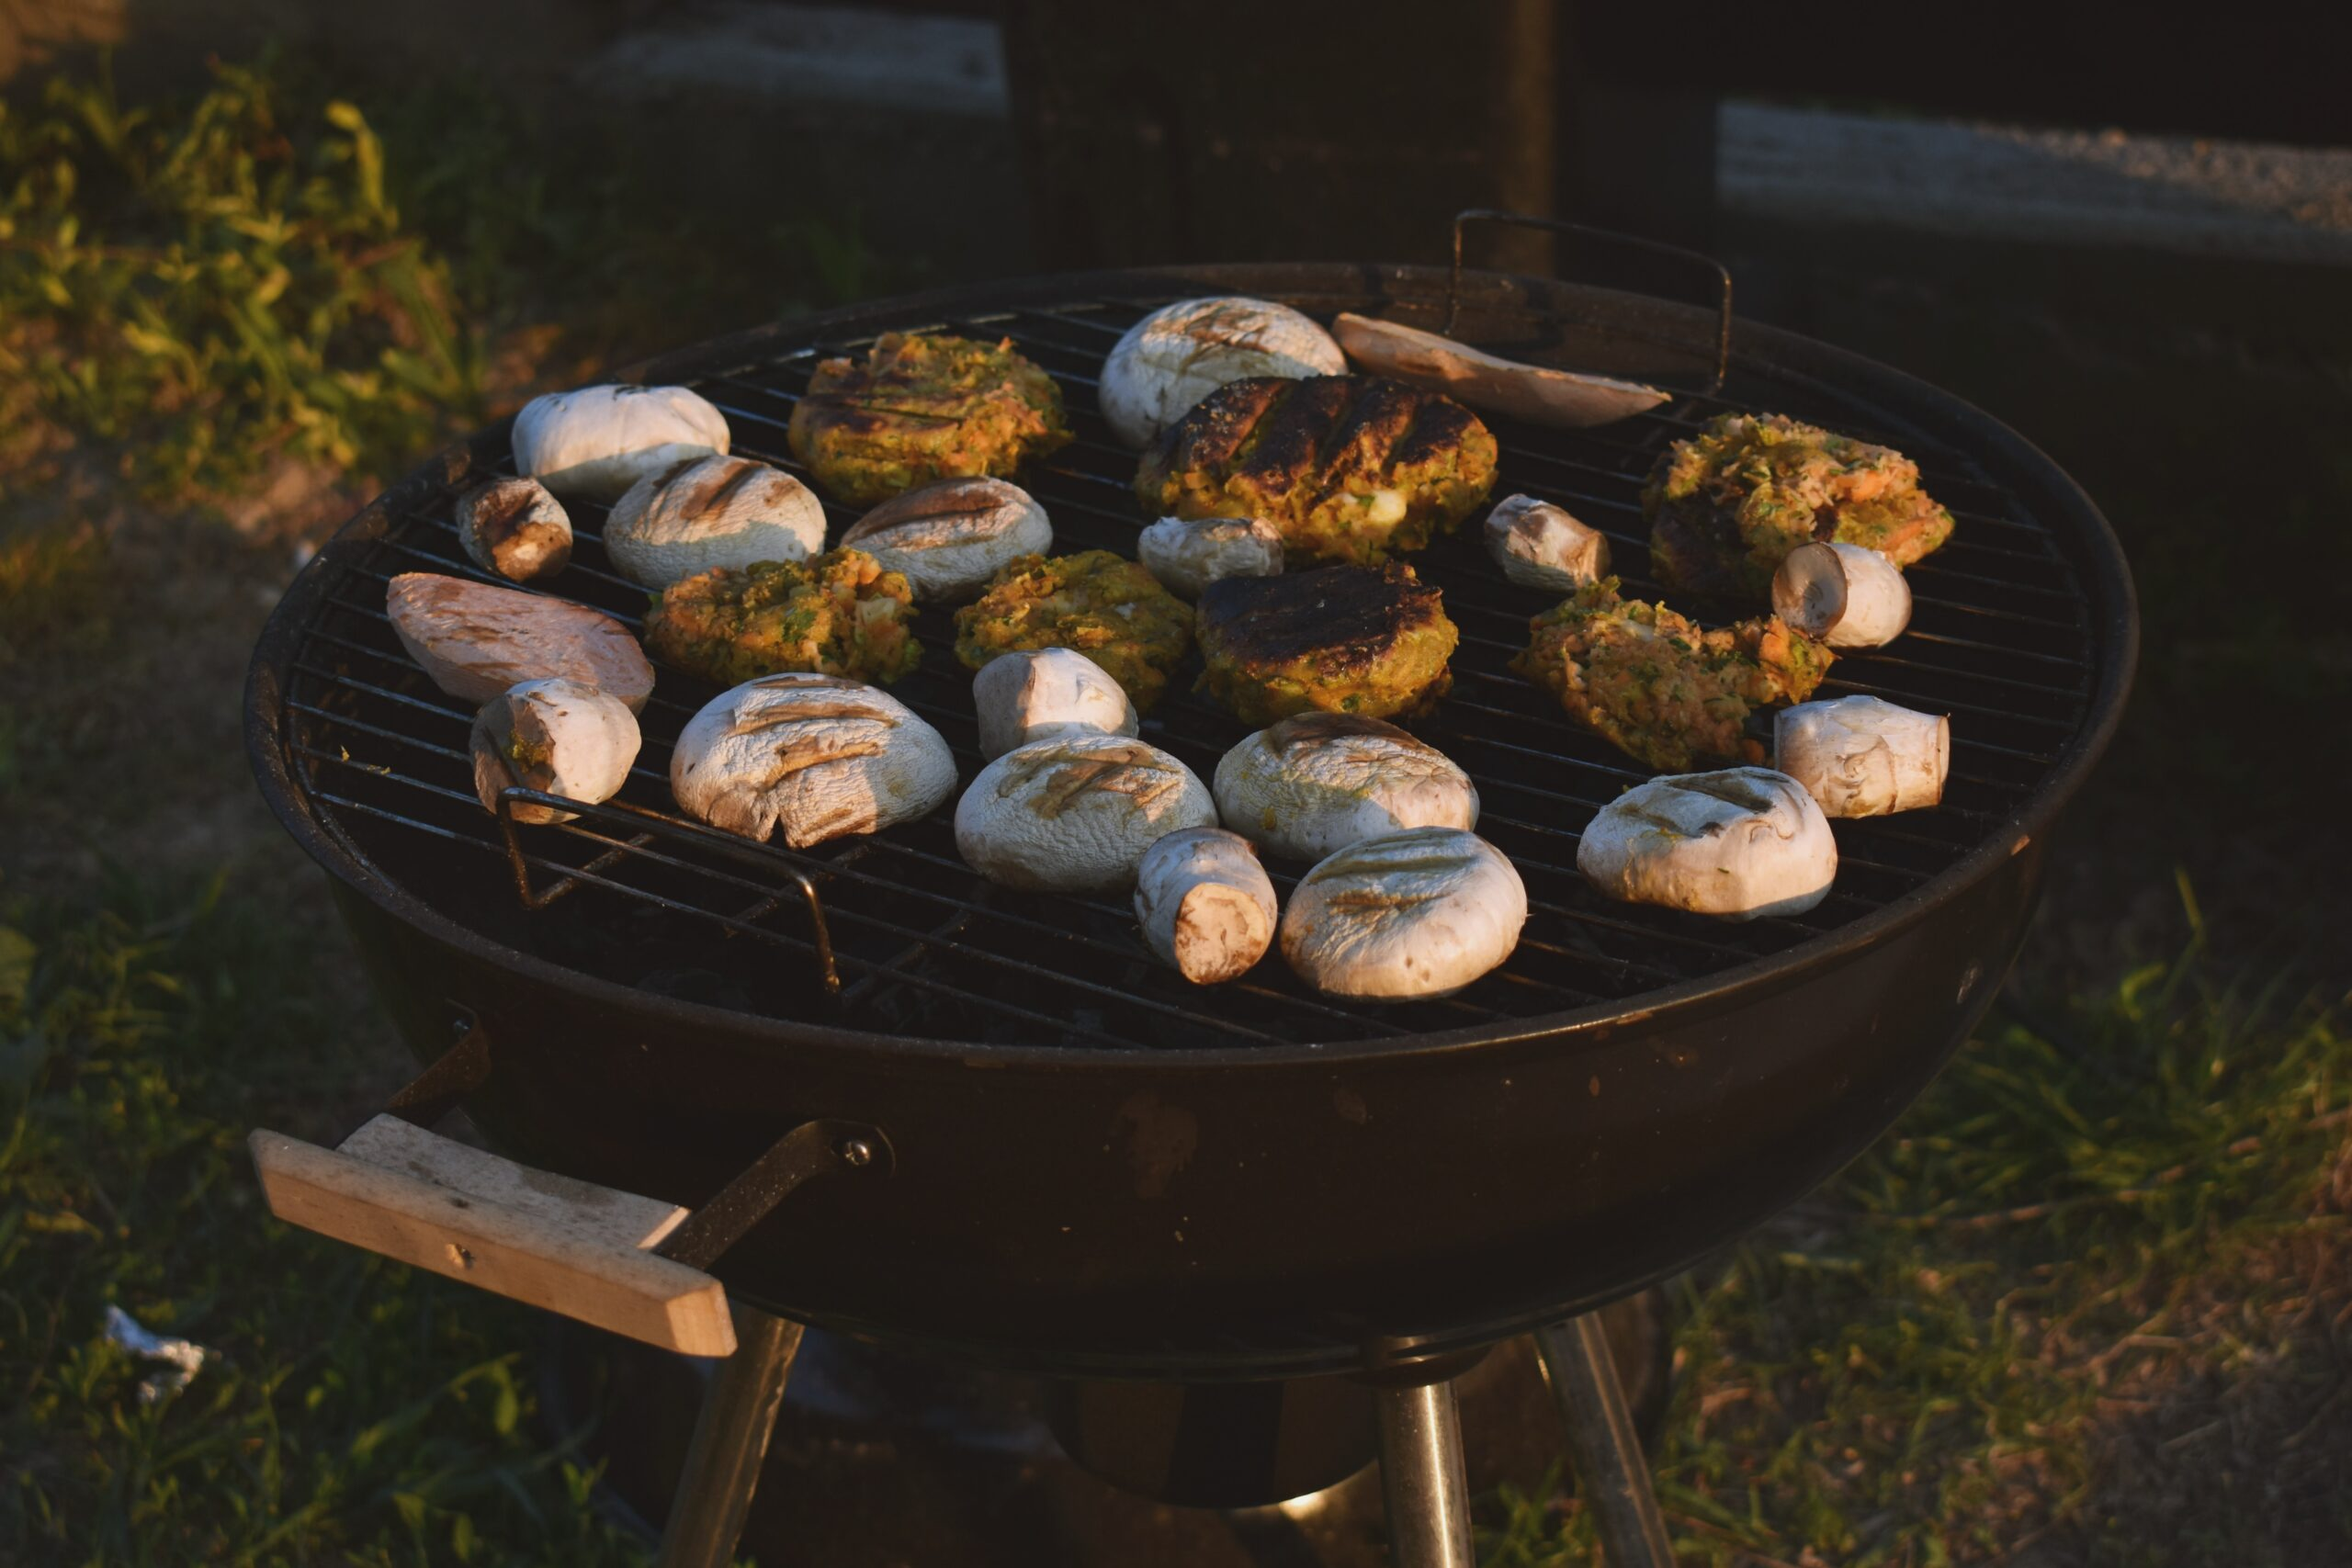 Assorted food on black grill outdoors